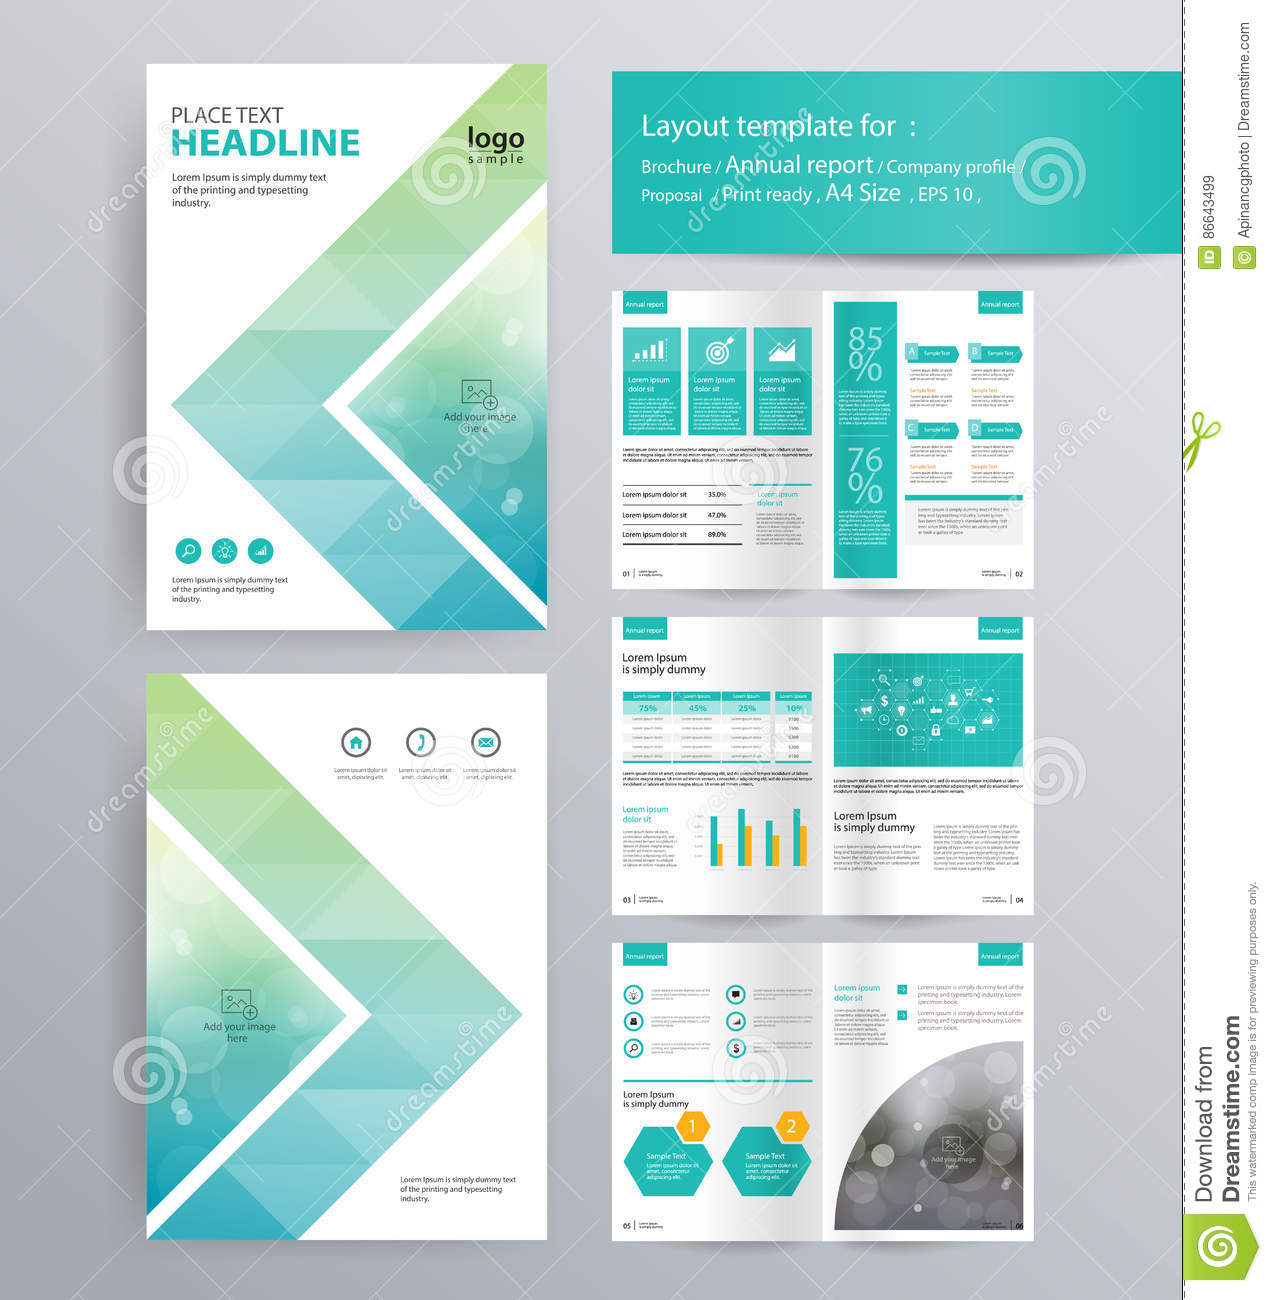 Excellent 1 Page Resumes Thin 1 Week Calendar Template Regular 1099 Agreement Template 11 Vuze Search Templates Young 15 Year Old Resume Example Green2 Week Notice Templates Page Layout For Company Profile, Annual Report, And Brochure ..